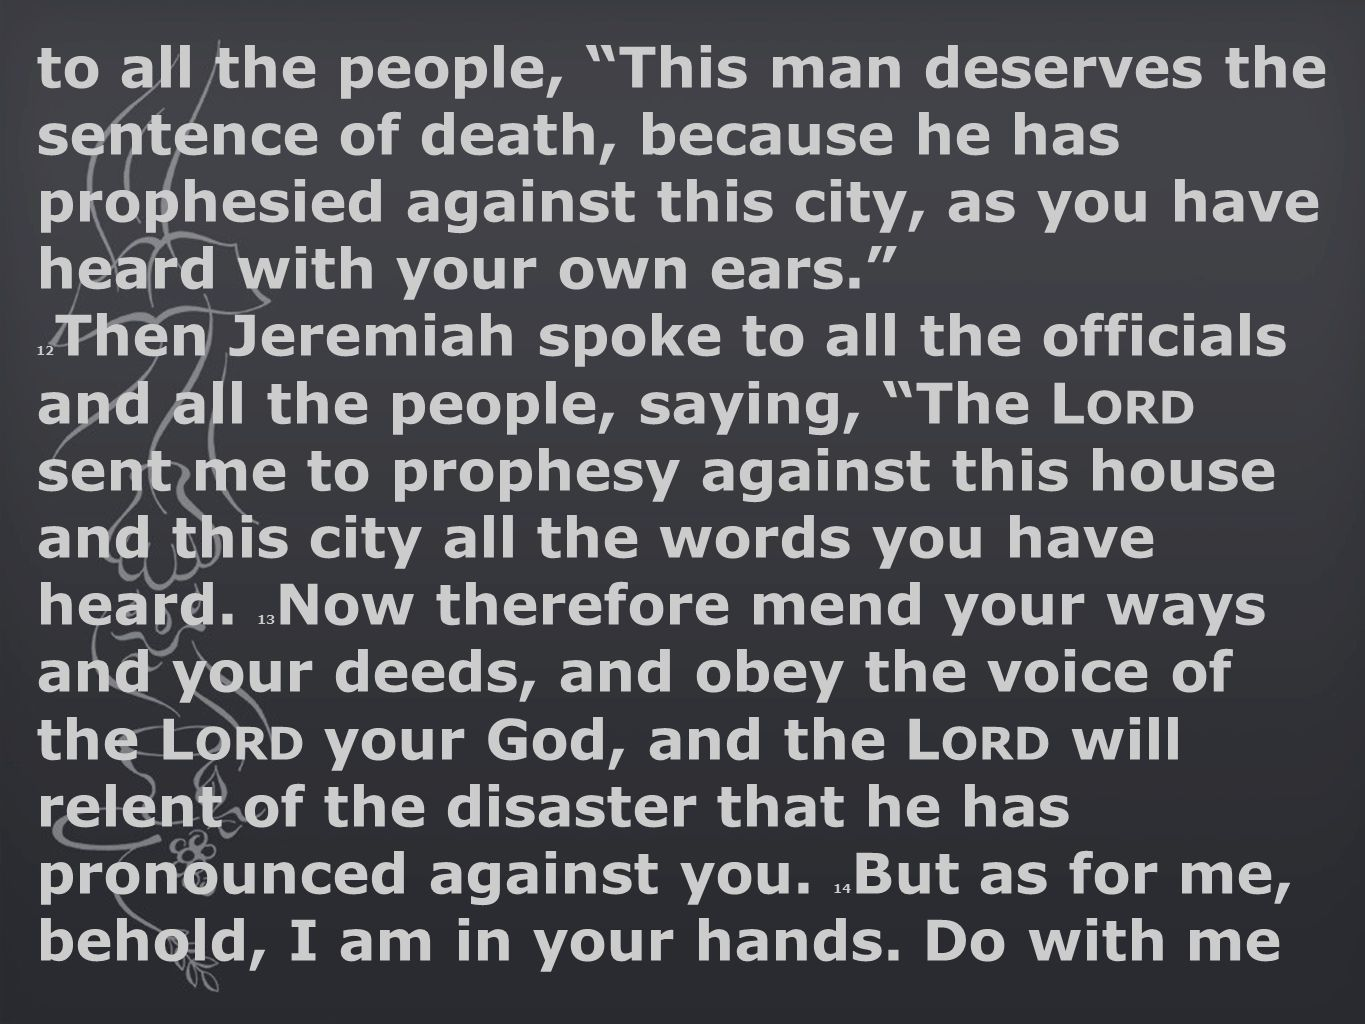 to all the people, This man deserves the sentence of death, because he has prophesied against this city, as you have heard with your own ears. 12 Then Jeremiah spoke to all the officials and all the people, saying, The L ORD sent me to prophesy against this house and this city all the words you have heard.